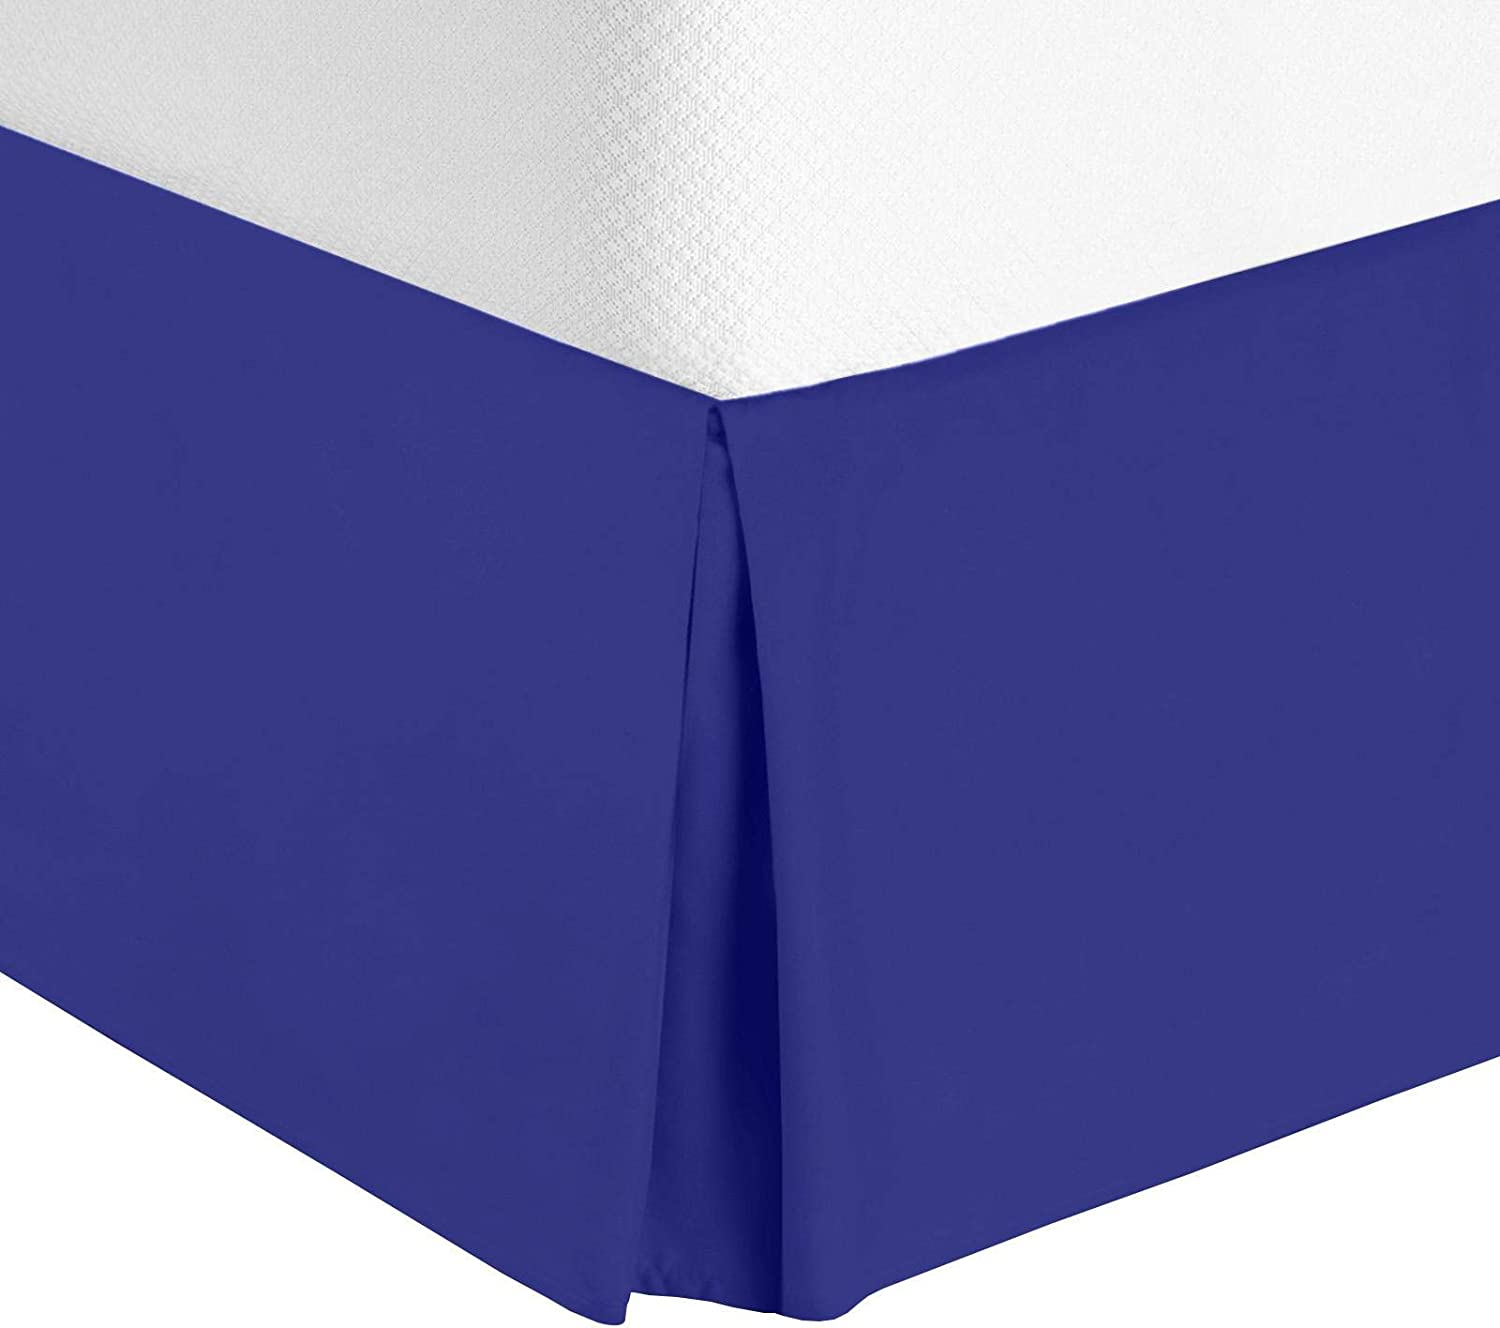 """Luxury Louisville-Jefferson County Mall Pleated Bed Skirt - 14"""" XL Royal Blue New products world's highest quality popular Ruffle Fitt Twin"""